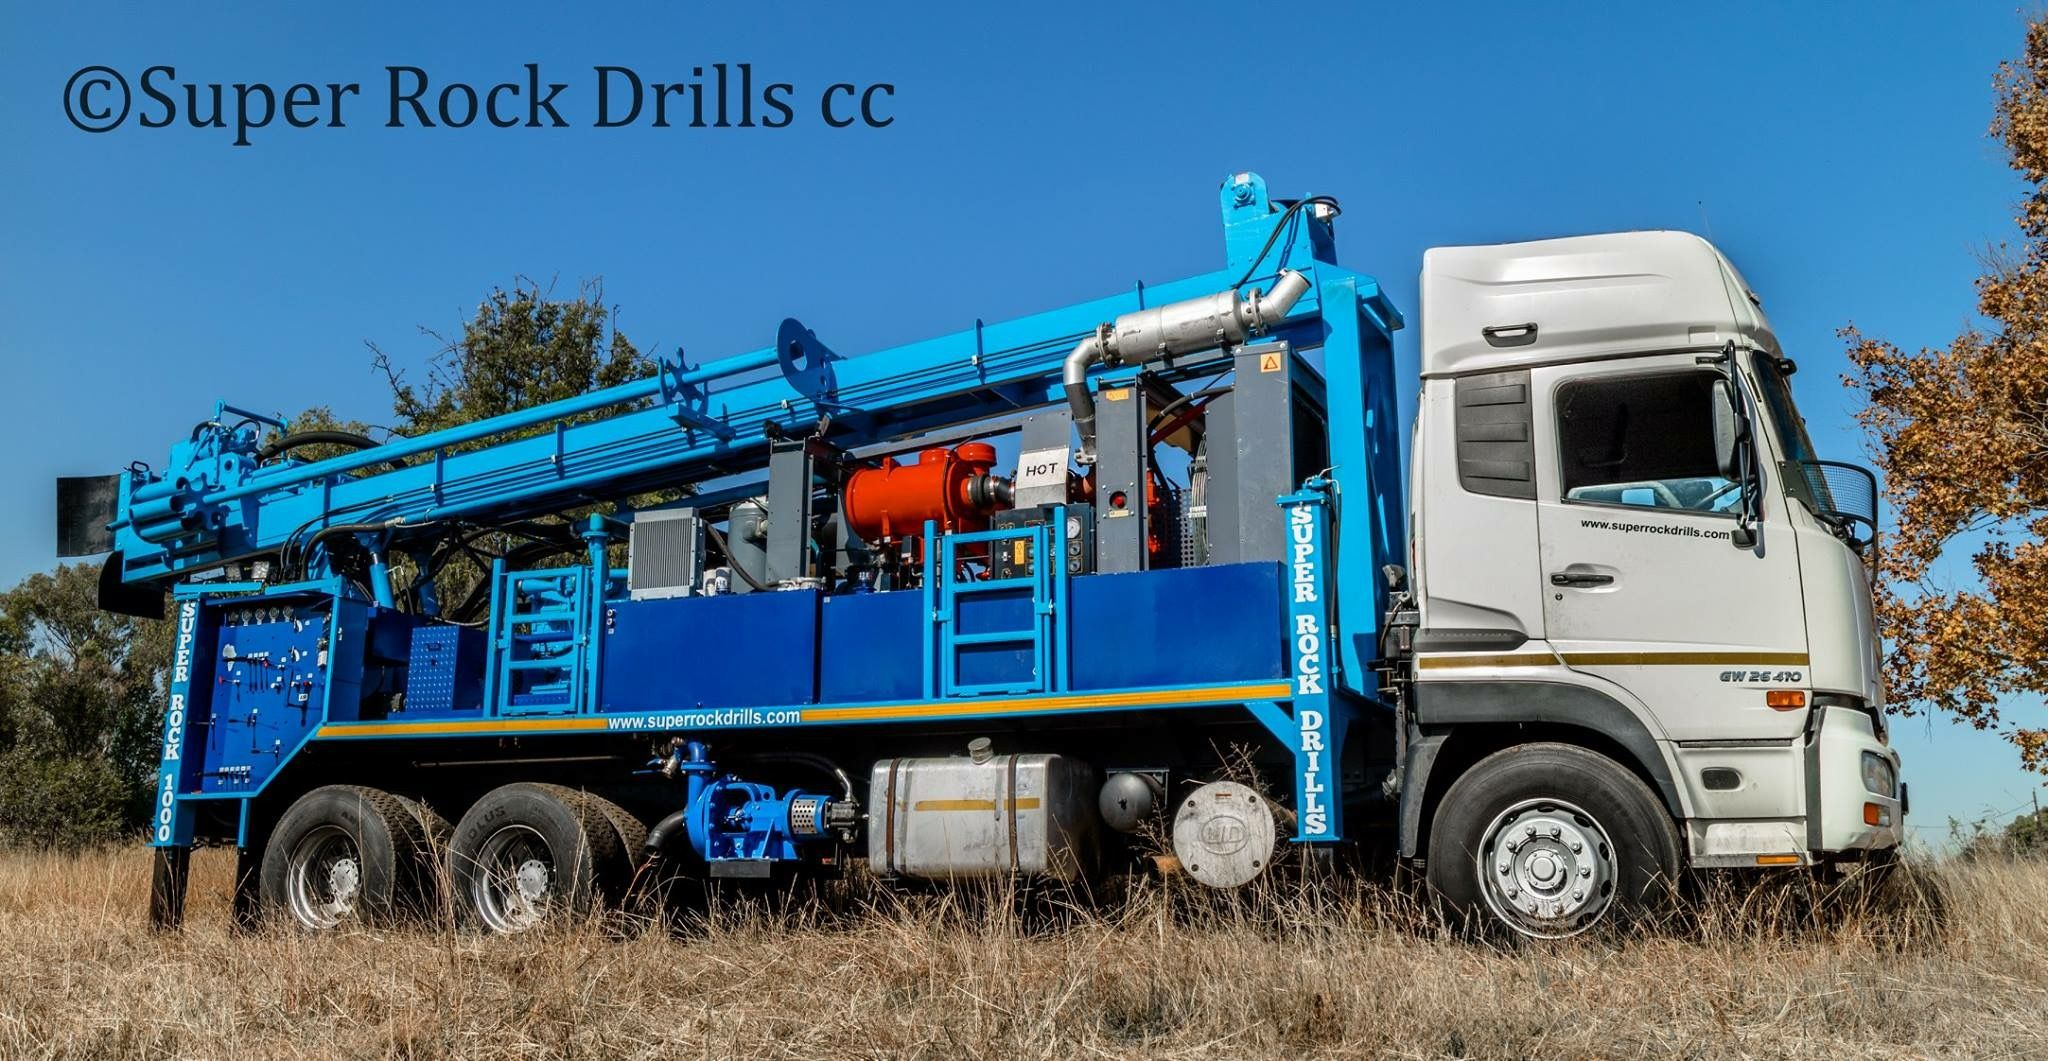 Sr1000 Water Well Drill Rig Water Well Drilling Well Drilling Drilling Rig